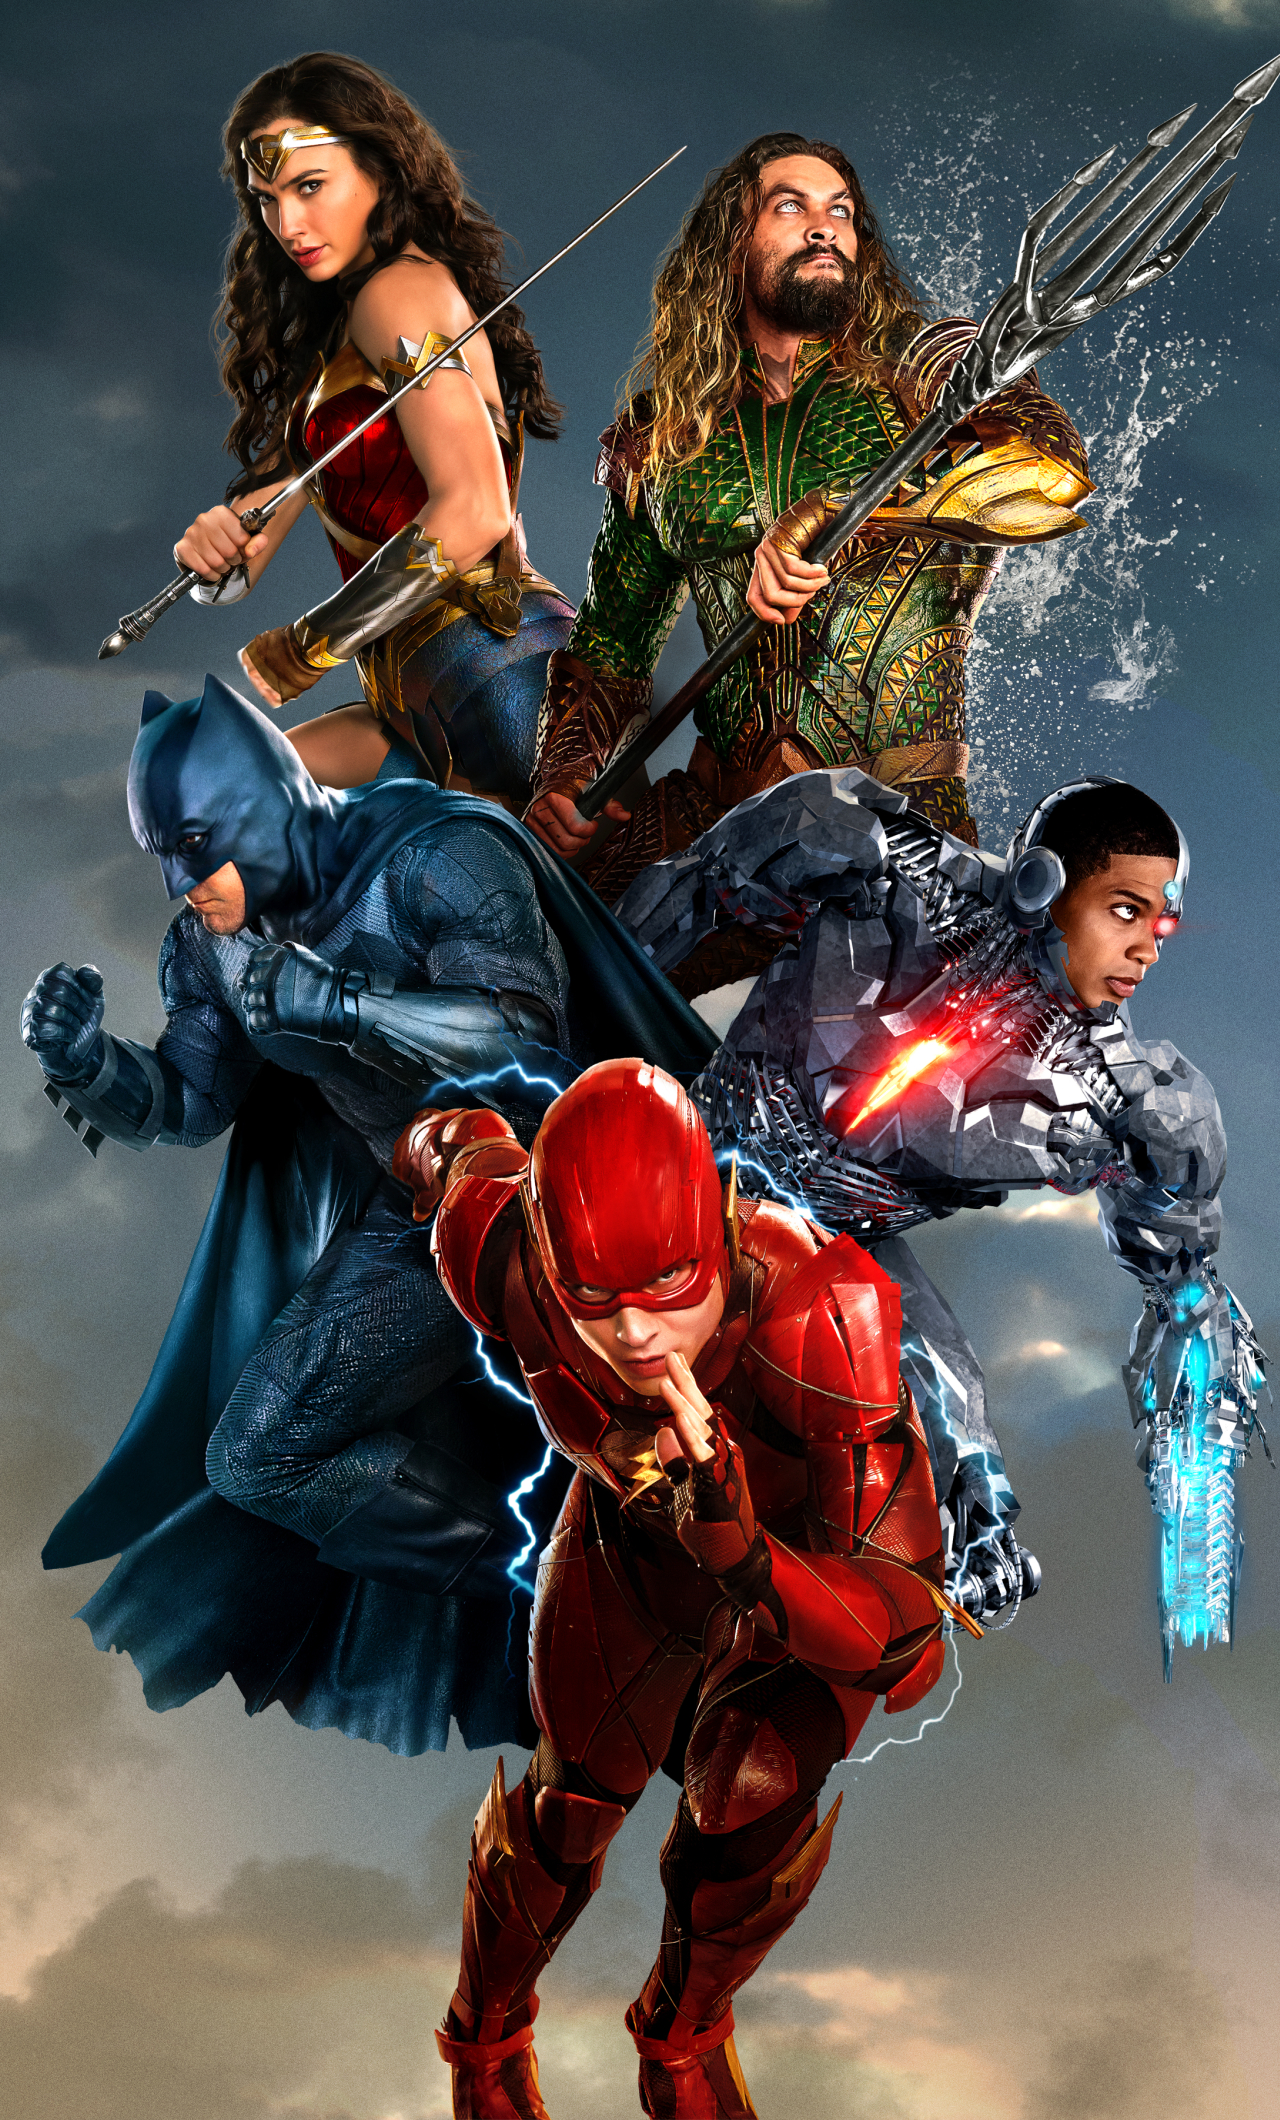 Download Justice League Team Poster 1280x2120 Resolution HD 8K